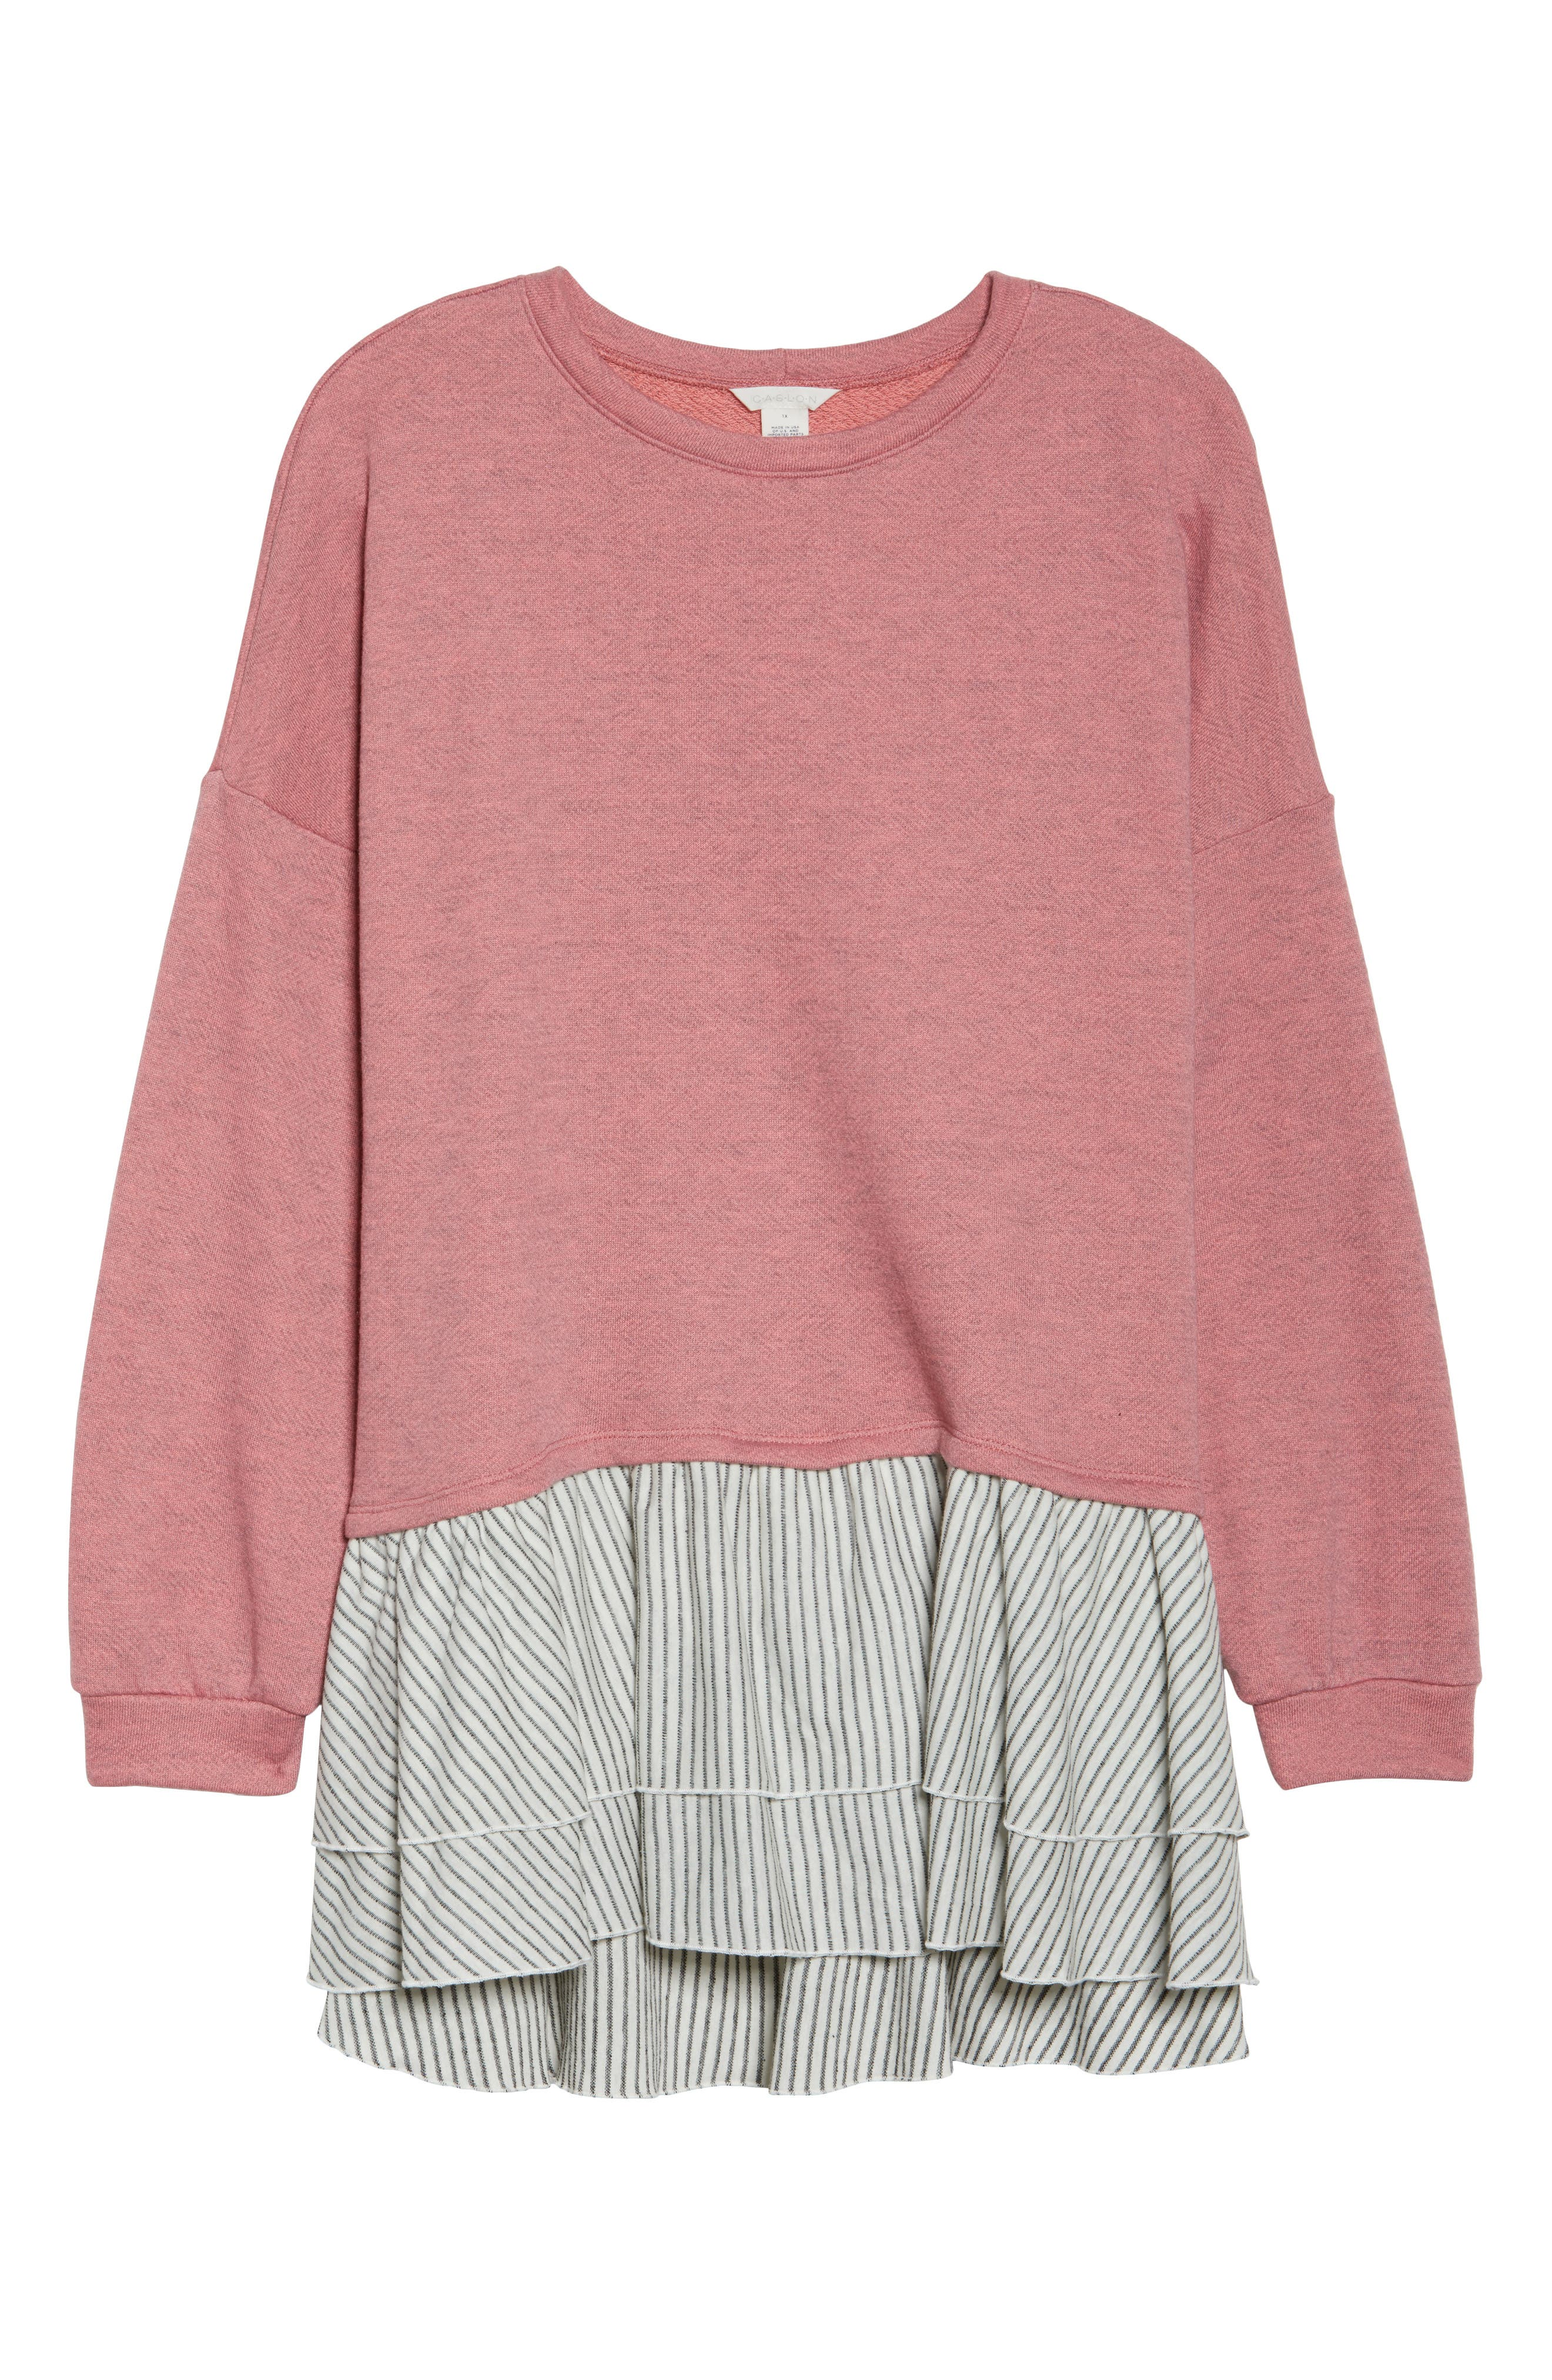 Layered Look Sweatshirt,                             Alternate thumbnail 6, color,                             Coral- Navy Stripe Colorblock